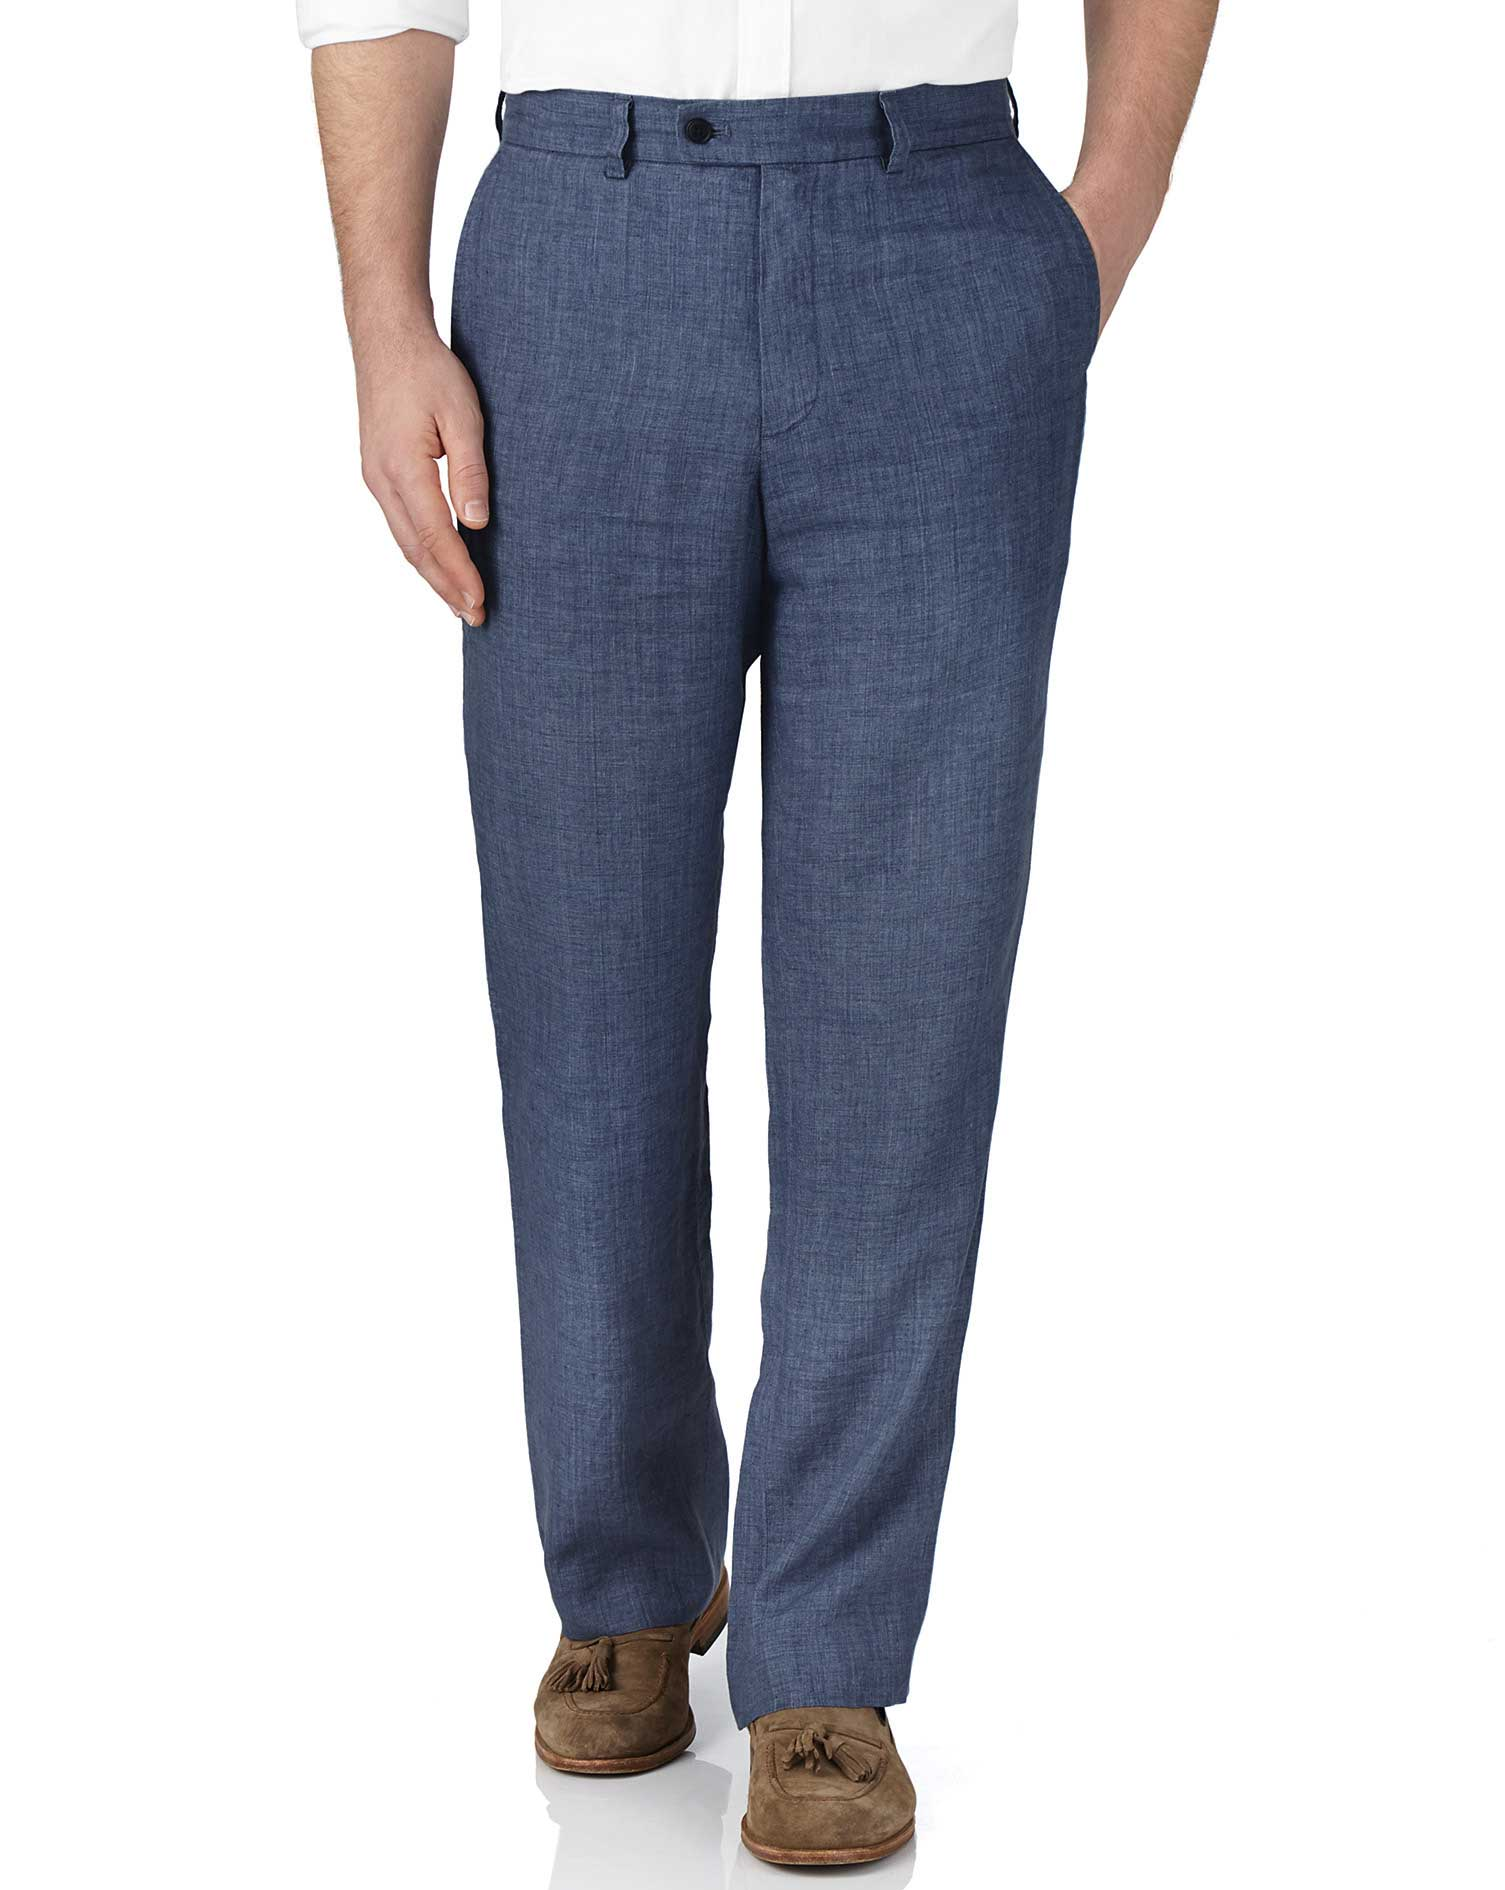 Blue Classic Fit Linen Trousers Size W32 L34 by Charles Tyrwhitt